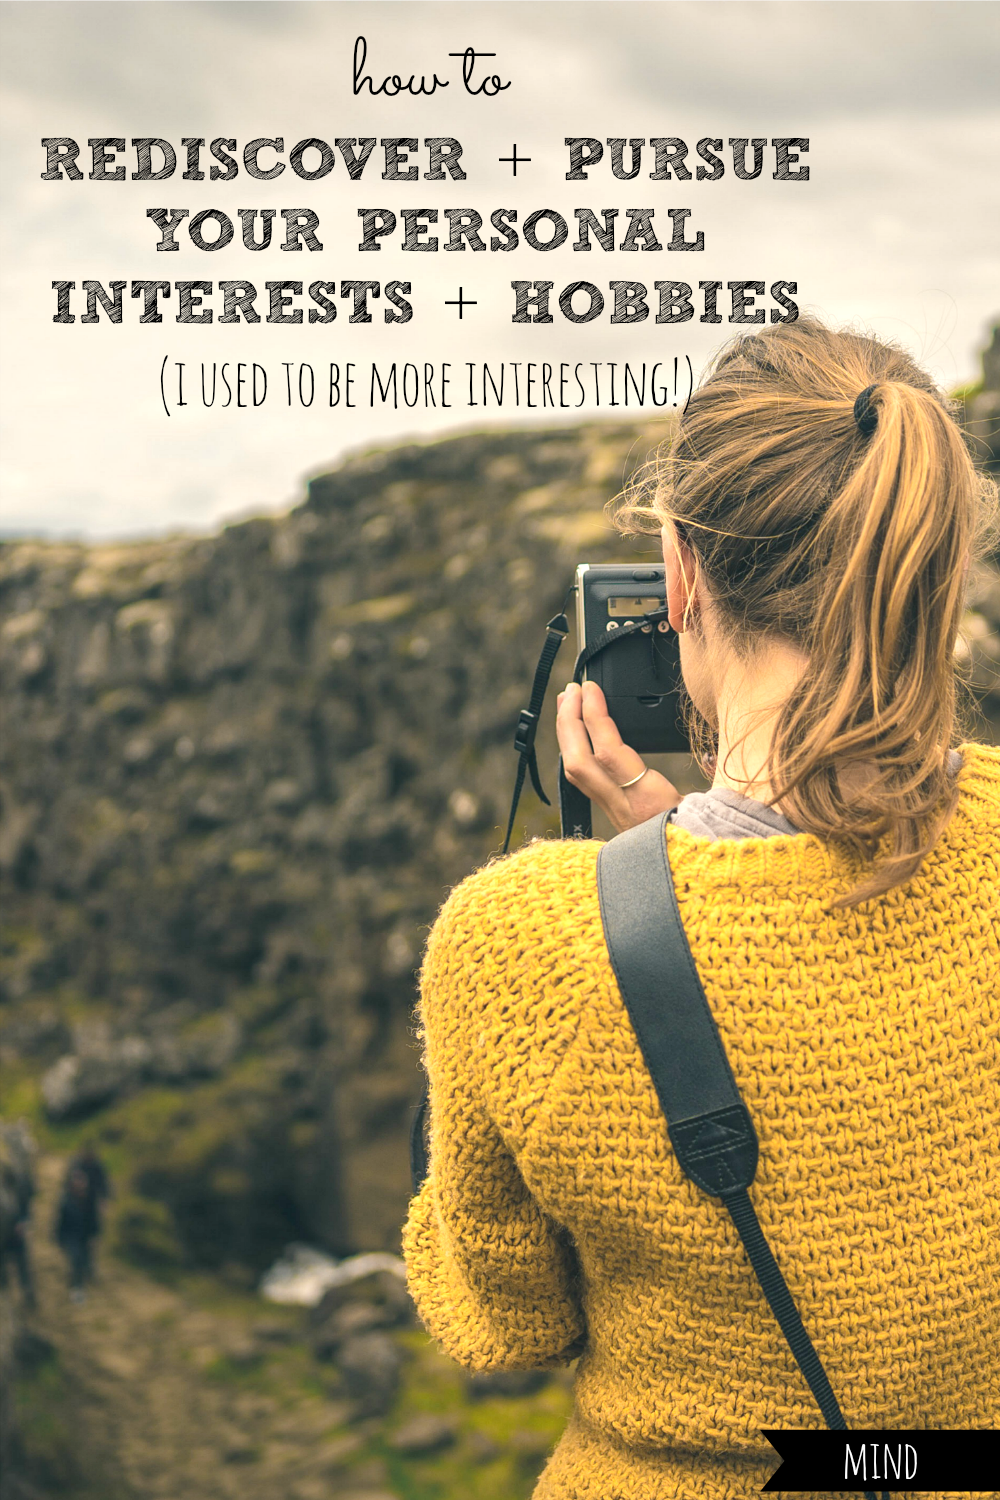 Ever feel like you've lost yourself and the things that made you interesting and unique? Here's how to rediscover and pursue your own interests and hobbies! #hobbies #hobby #interests #interest #discover #rediscover #pursue #pursuing #own #personal #unique #different #interesting #how #to #yourself #myself #individual #individuals #individuality #individualism